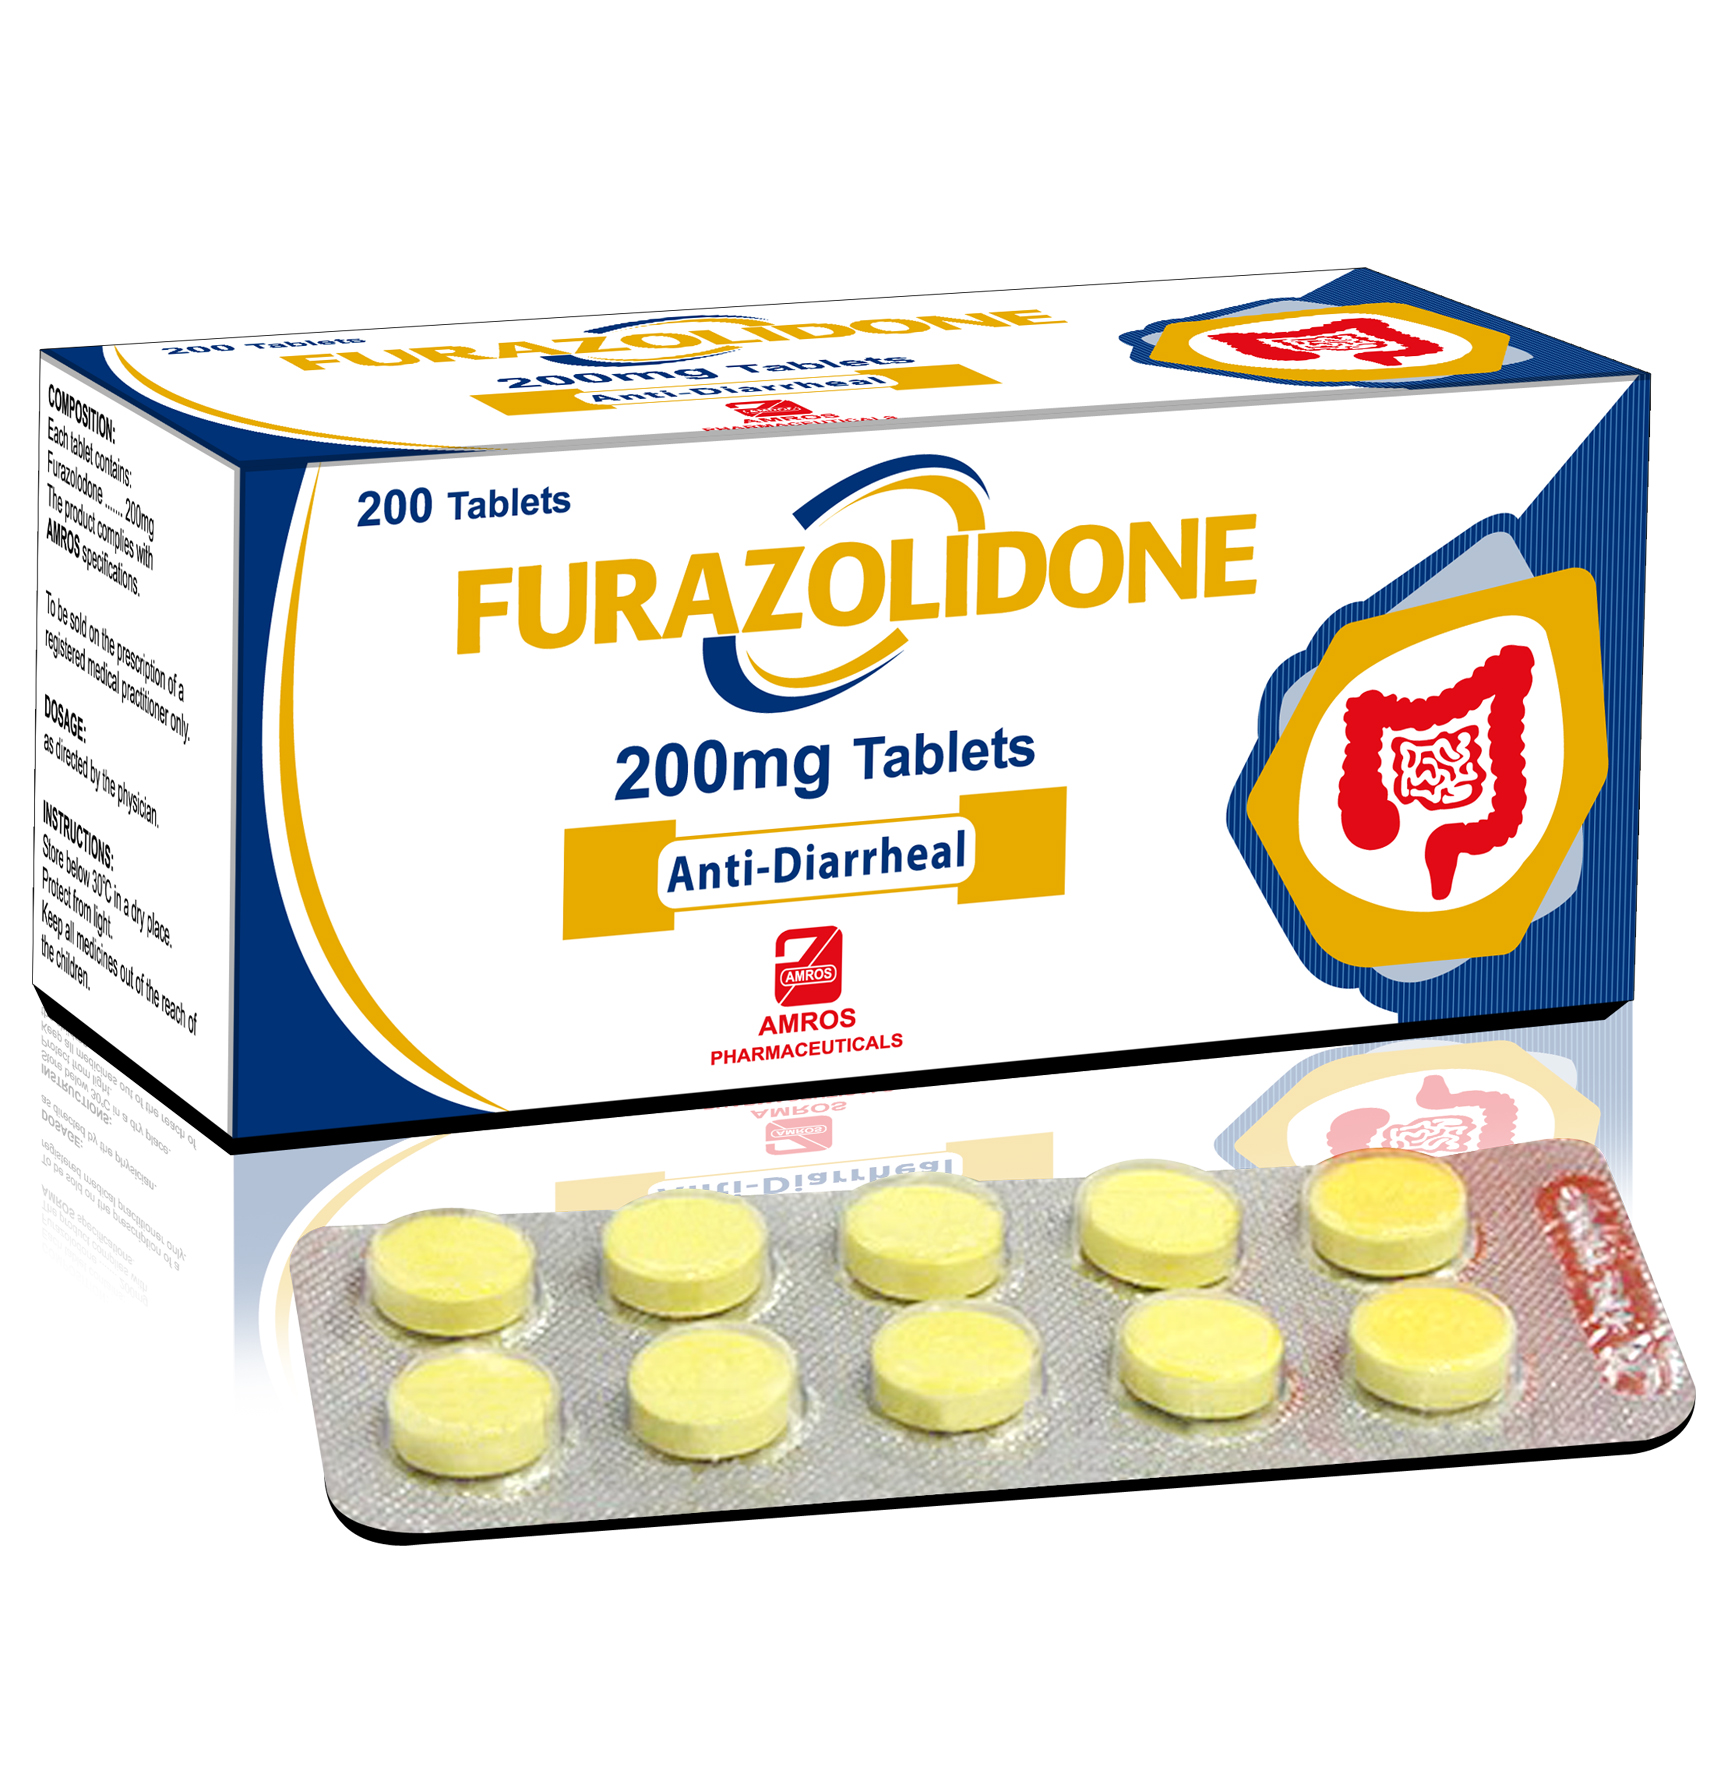 FURAZOLIDONE 100mg Tablet